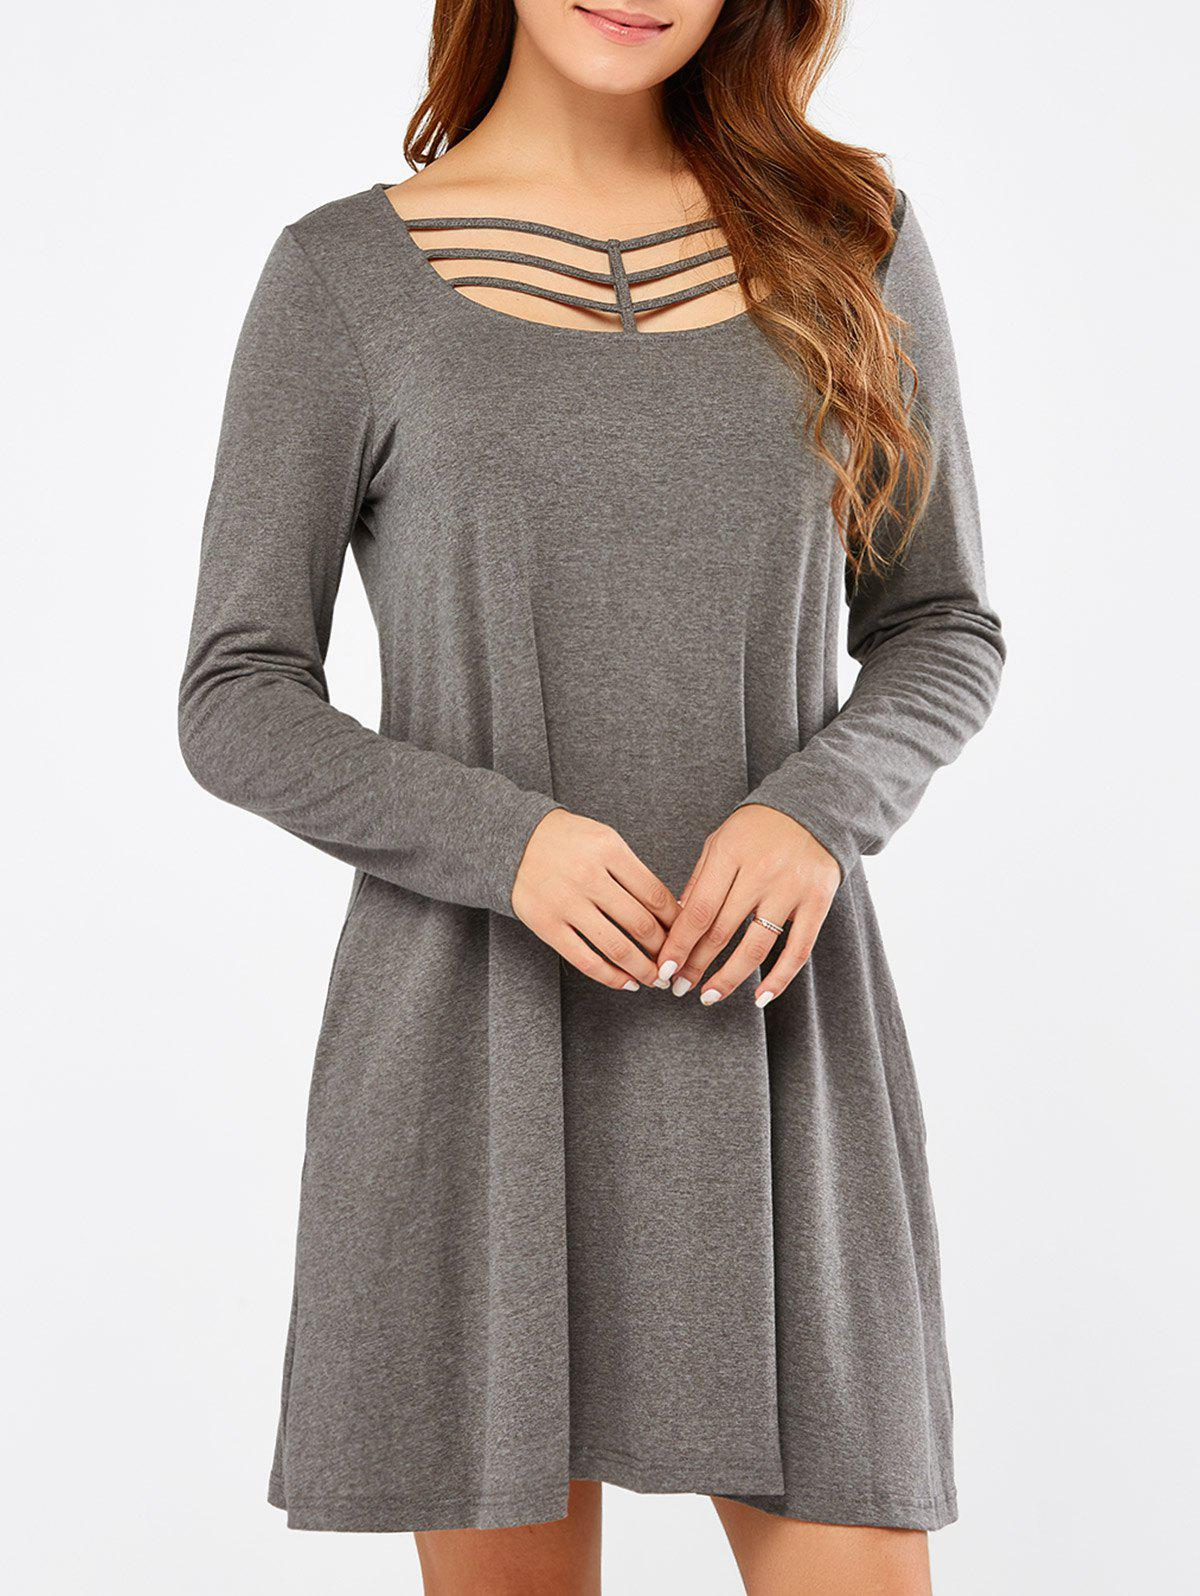 Long Sleeve Strappy A Line Casual Short Dress long sleeve cut out short a line dress